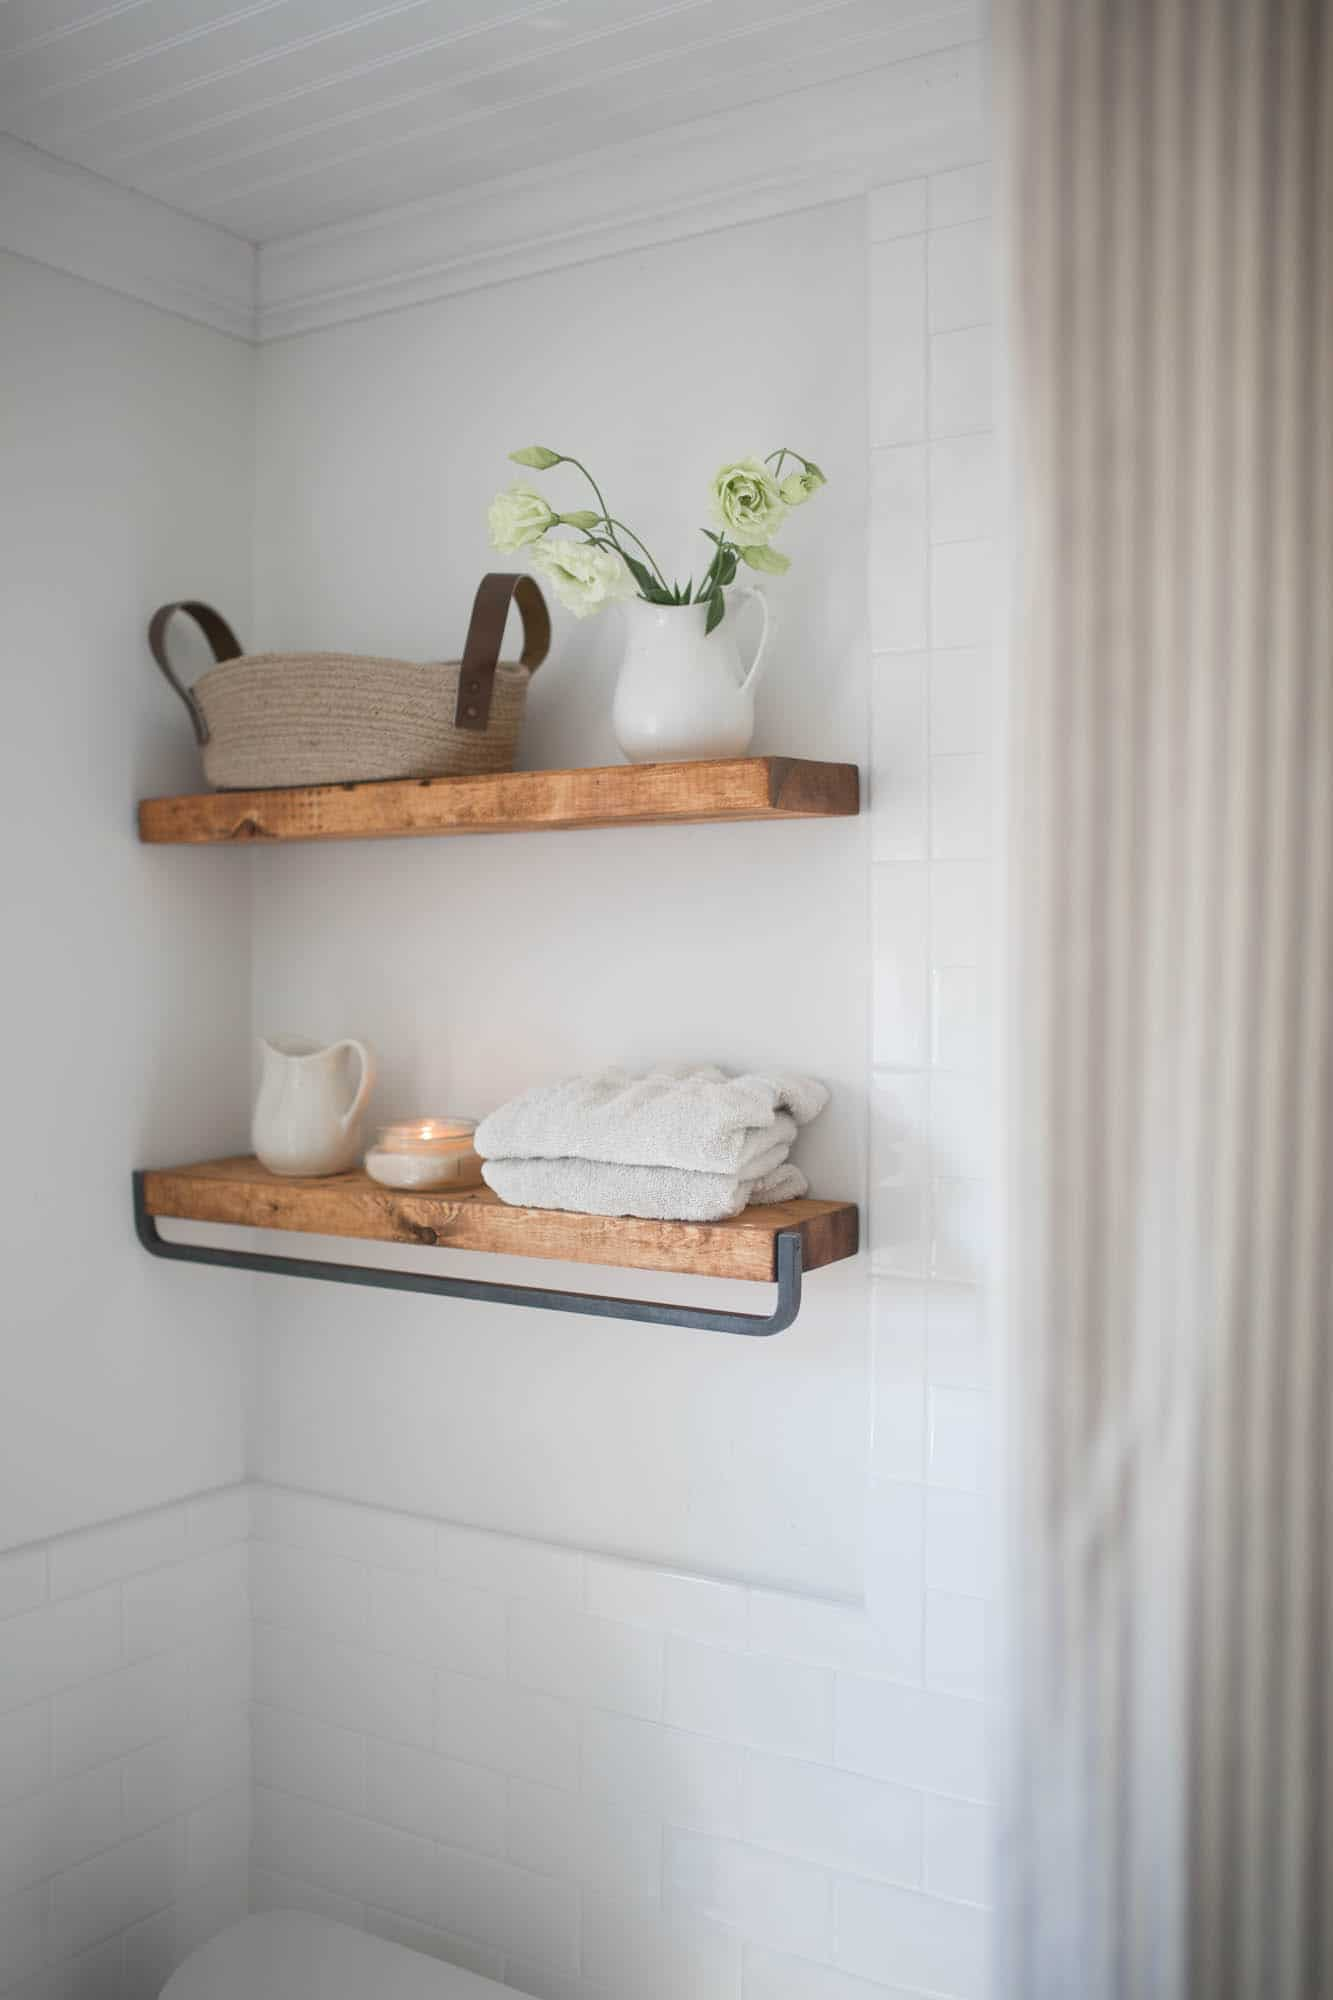 Farmhouse Bathroom Decor- Floating Shelves